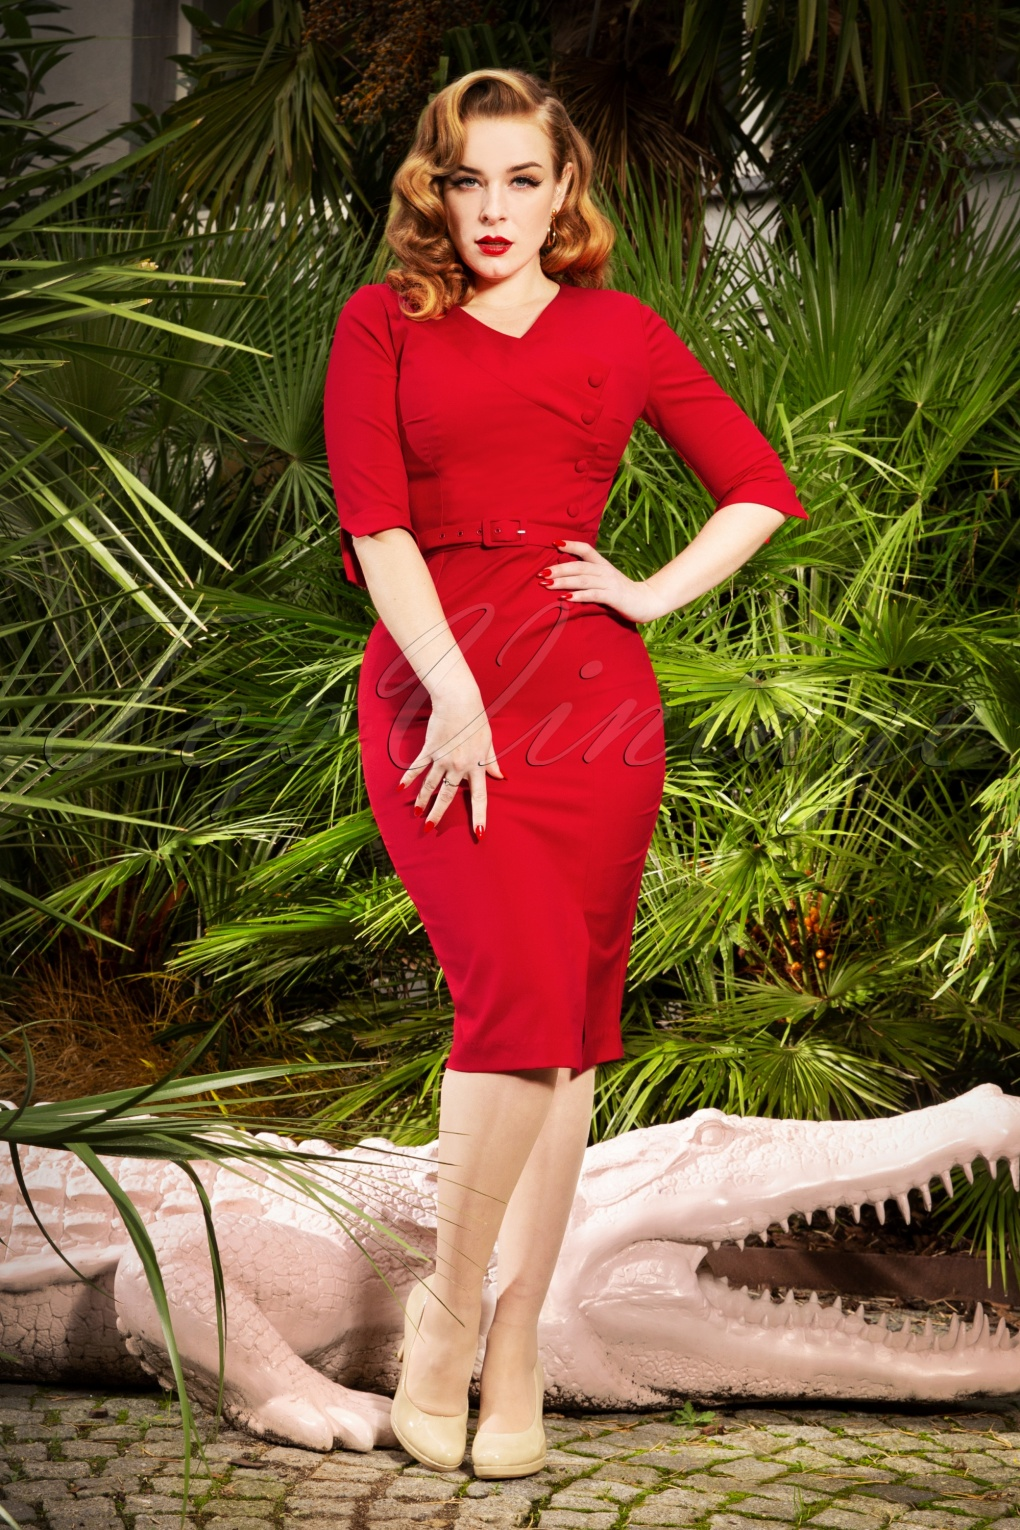 Vintage Style Dresses | Vintage Inspired Dresses 50s Vive Pencil Dress in Lipstick Red £106.62 AT vintagedancer.com